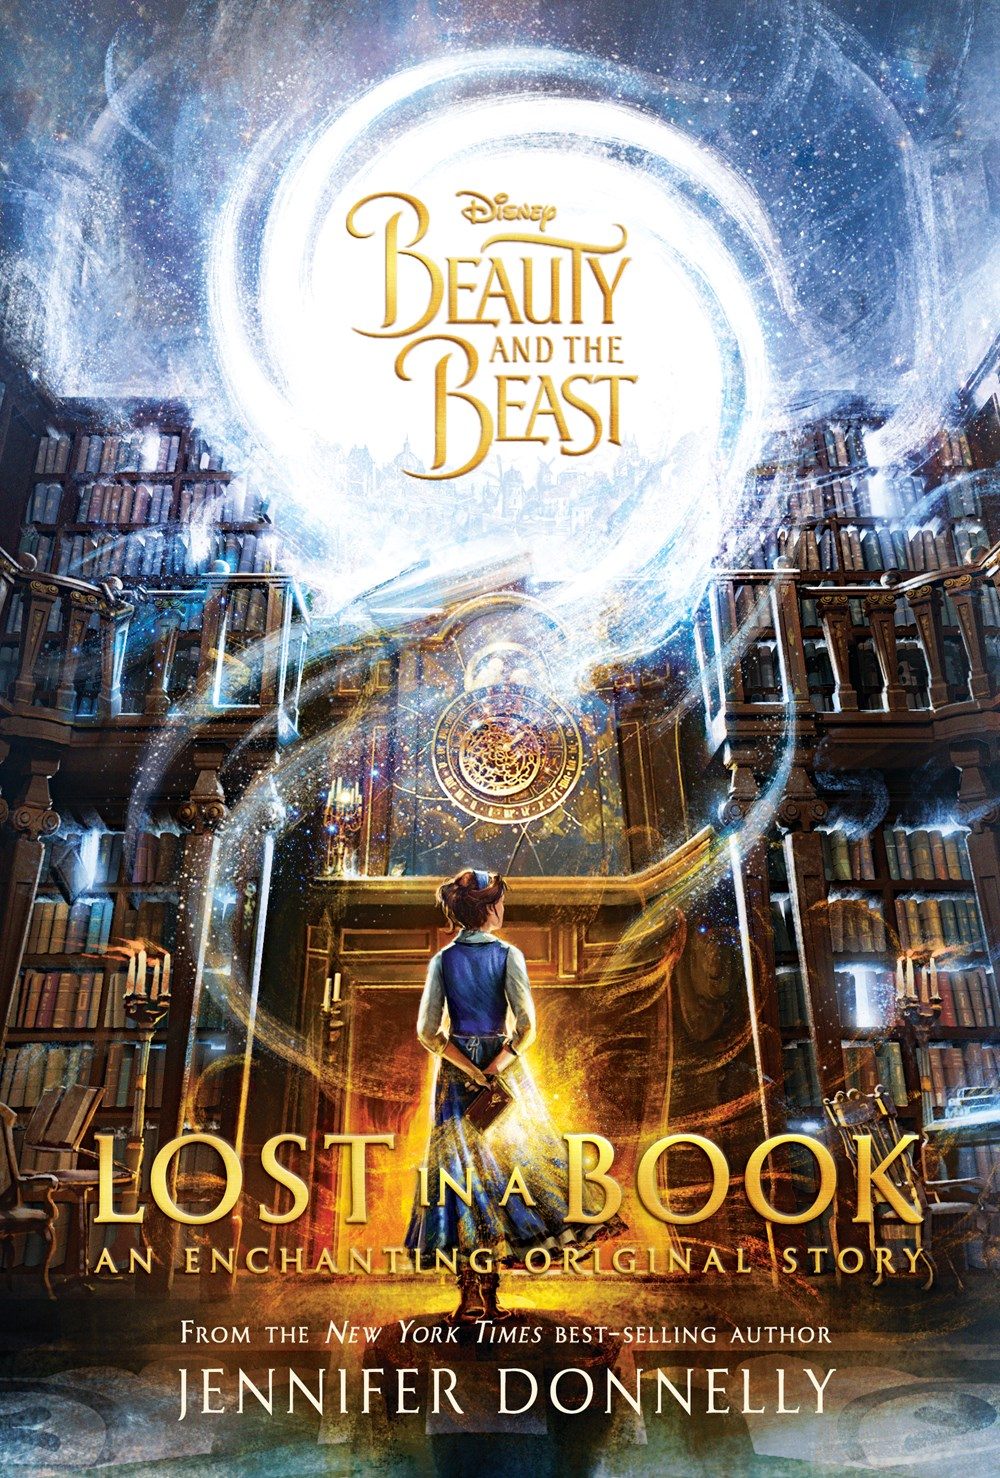 17 Beauty And The Beast: Lost In A Book By Jennifer Donnelly  Isbn13: 9781484780985 Publisher: Disney Press; Dlx Edition